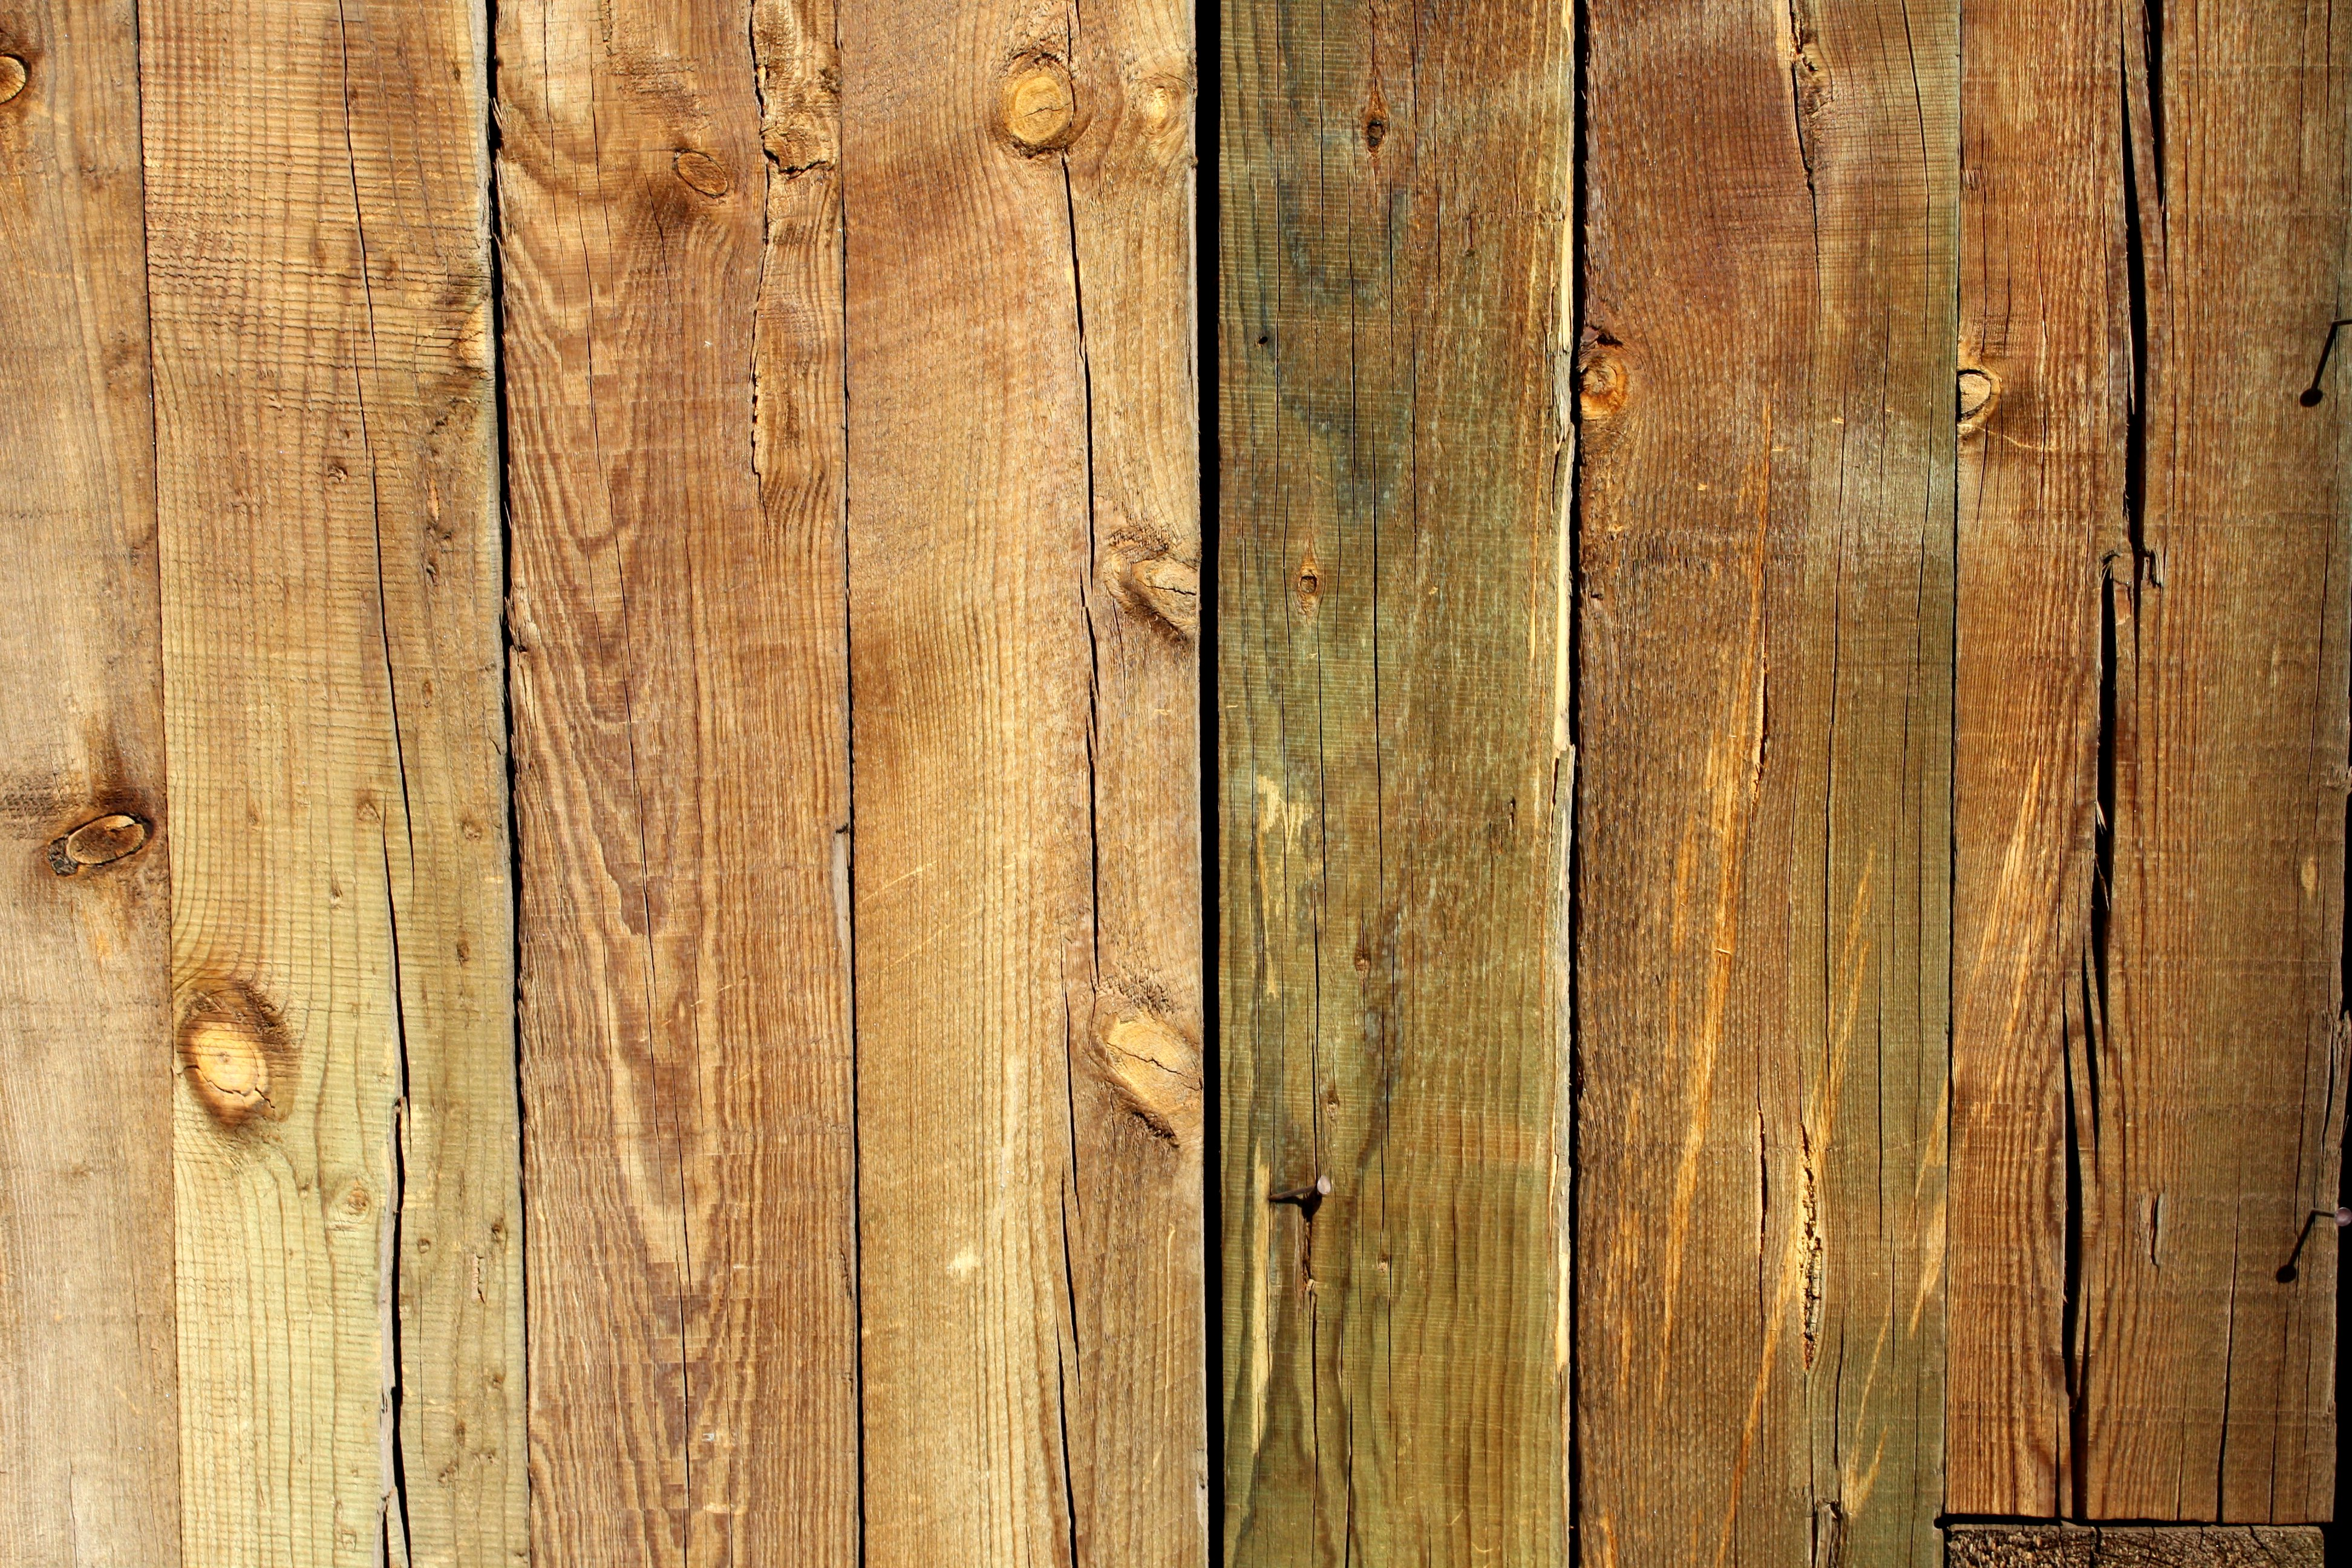 Wooden Boards Texture Picture Free Photograph Photos